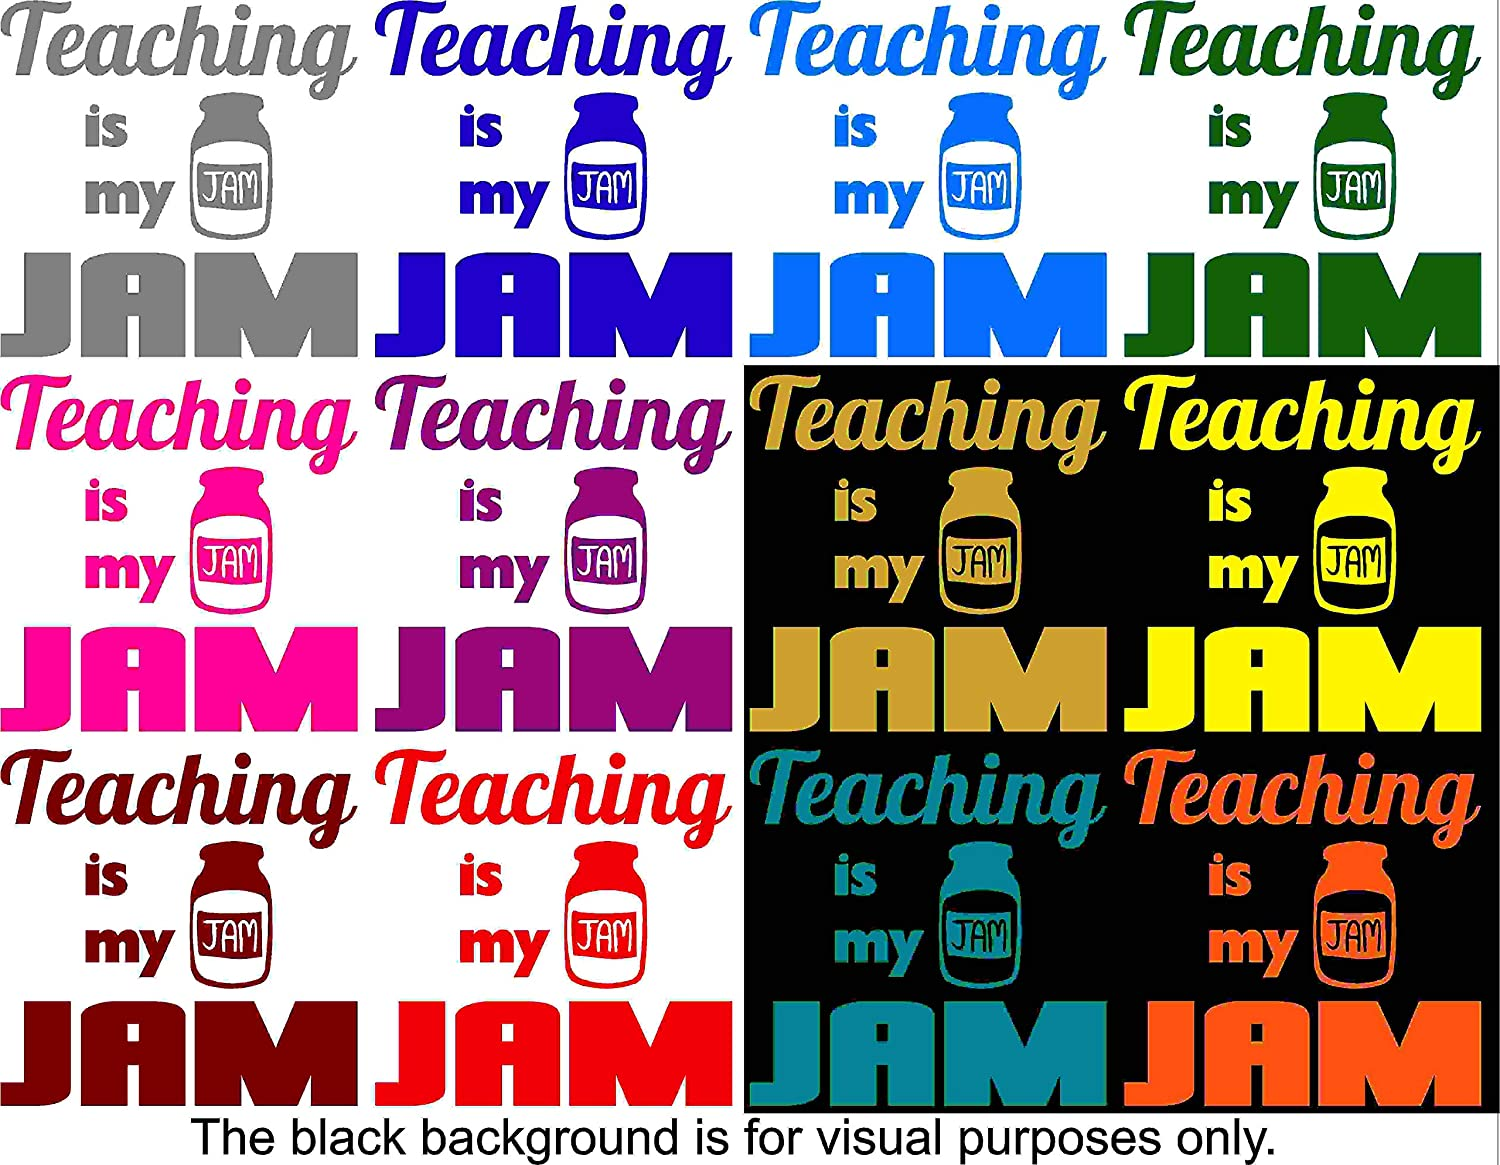 Teacher Teach Motivation Teaching Is My Jam Decal Sticker Vinyl Car Window Tumblers Wall Laptops Cellphones Phones Tablets Ipads Helmets Motorcycles Computer Towers V and T Gifts